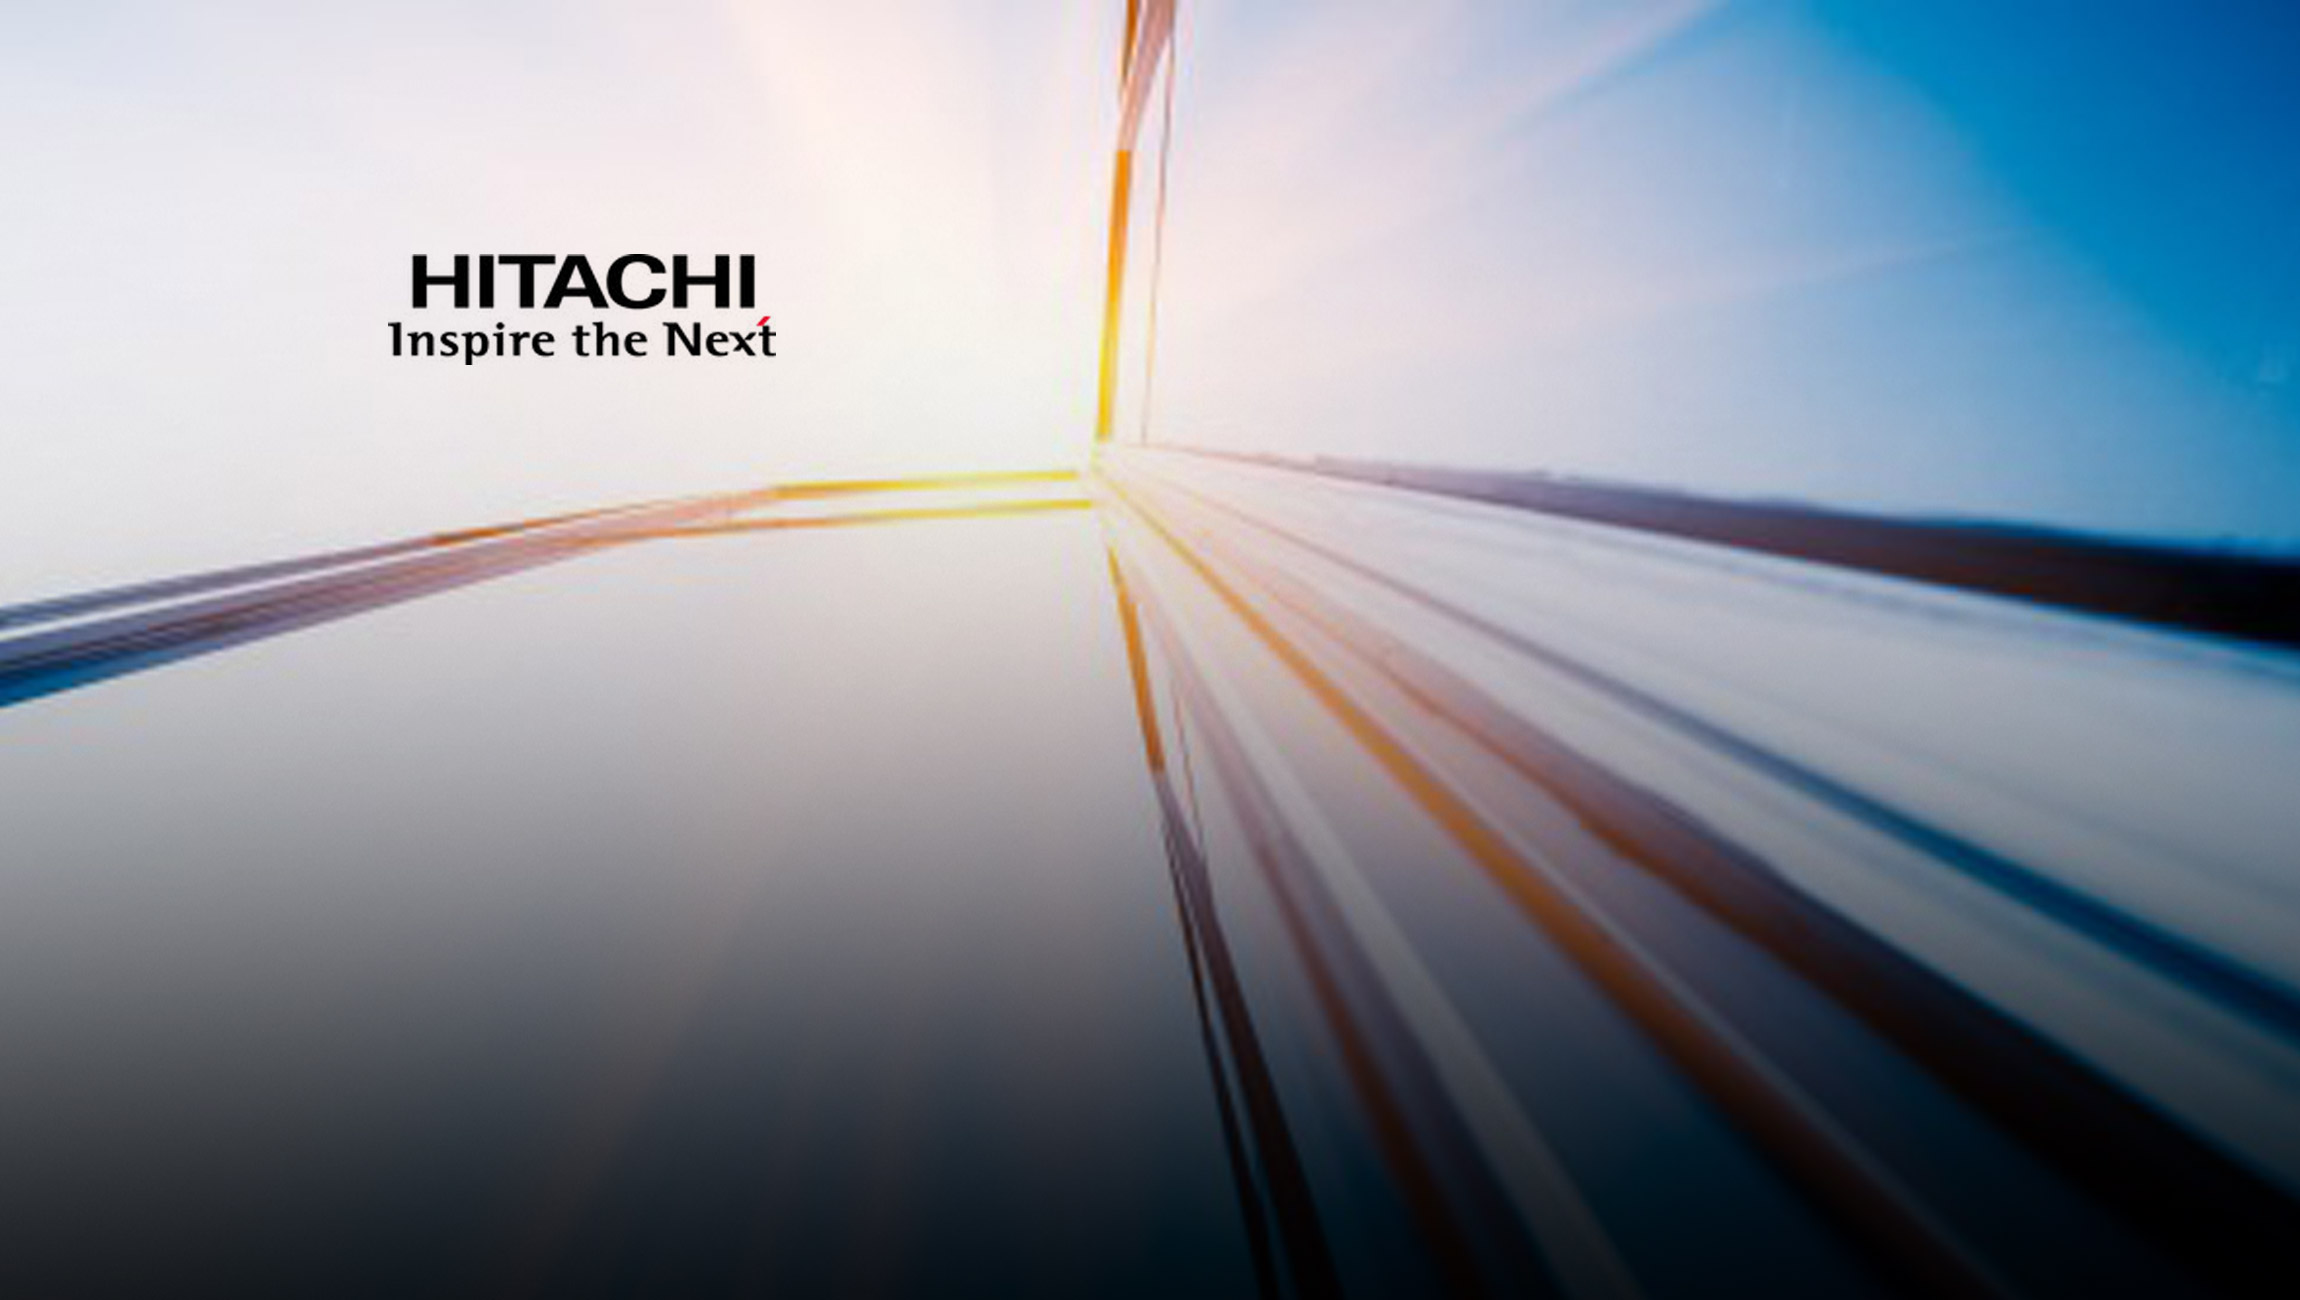 Hitachi Vantara to Offer Lumada Industrial Solutions on AWS, Accelerating and Optimizing Business Outcomes with IoT and AI